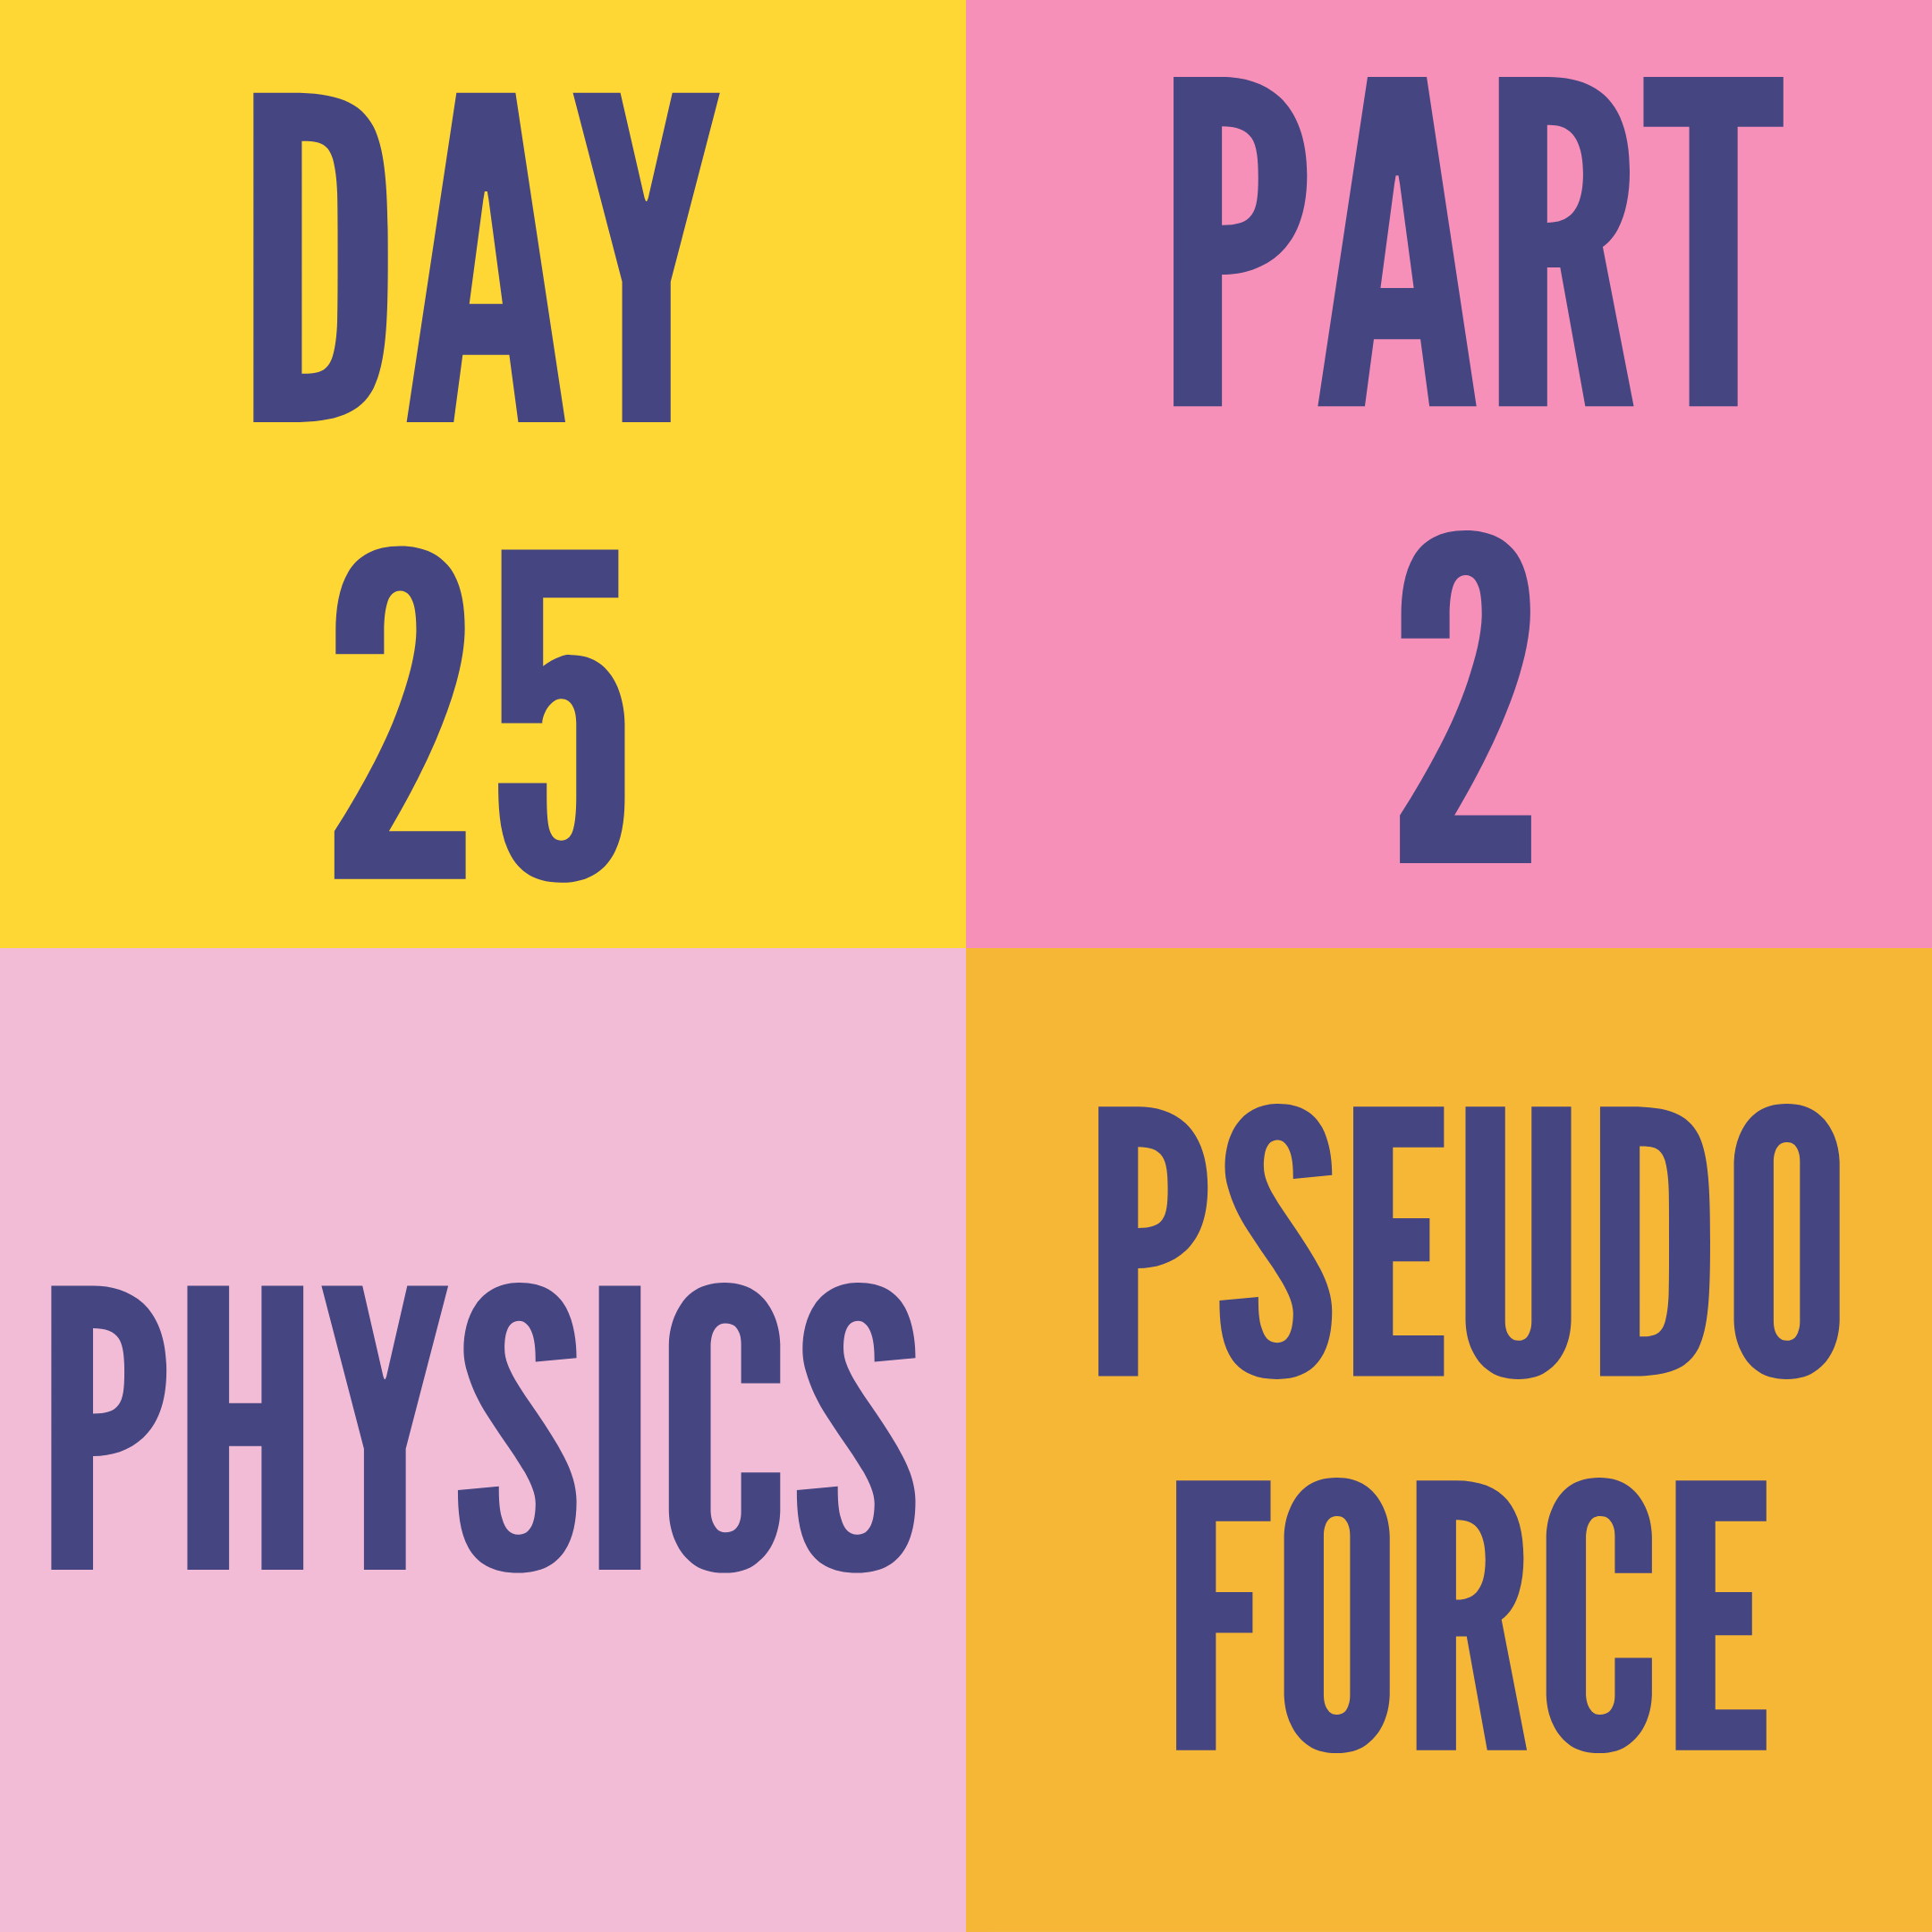 DAY-25 PART-2 PSEUDO FORCE